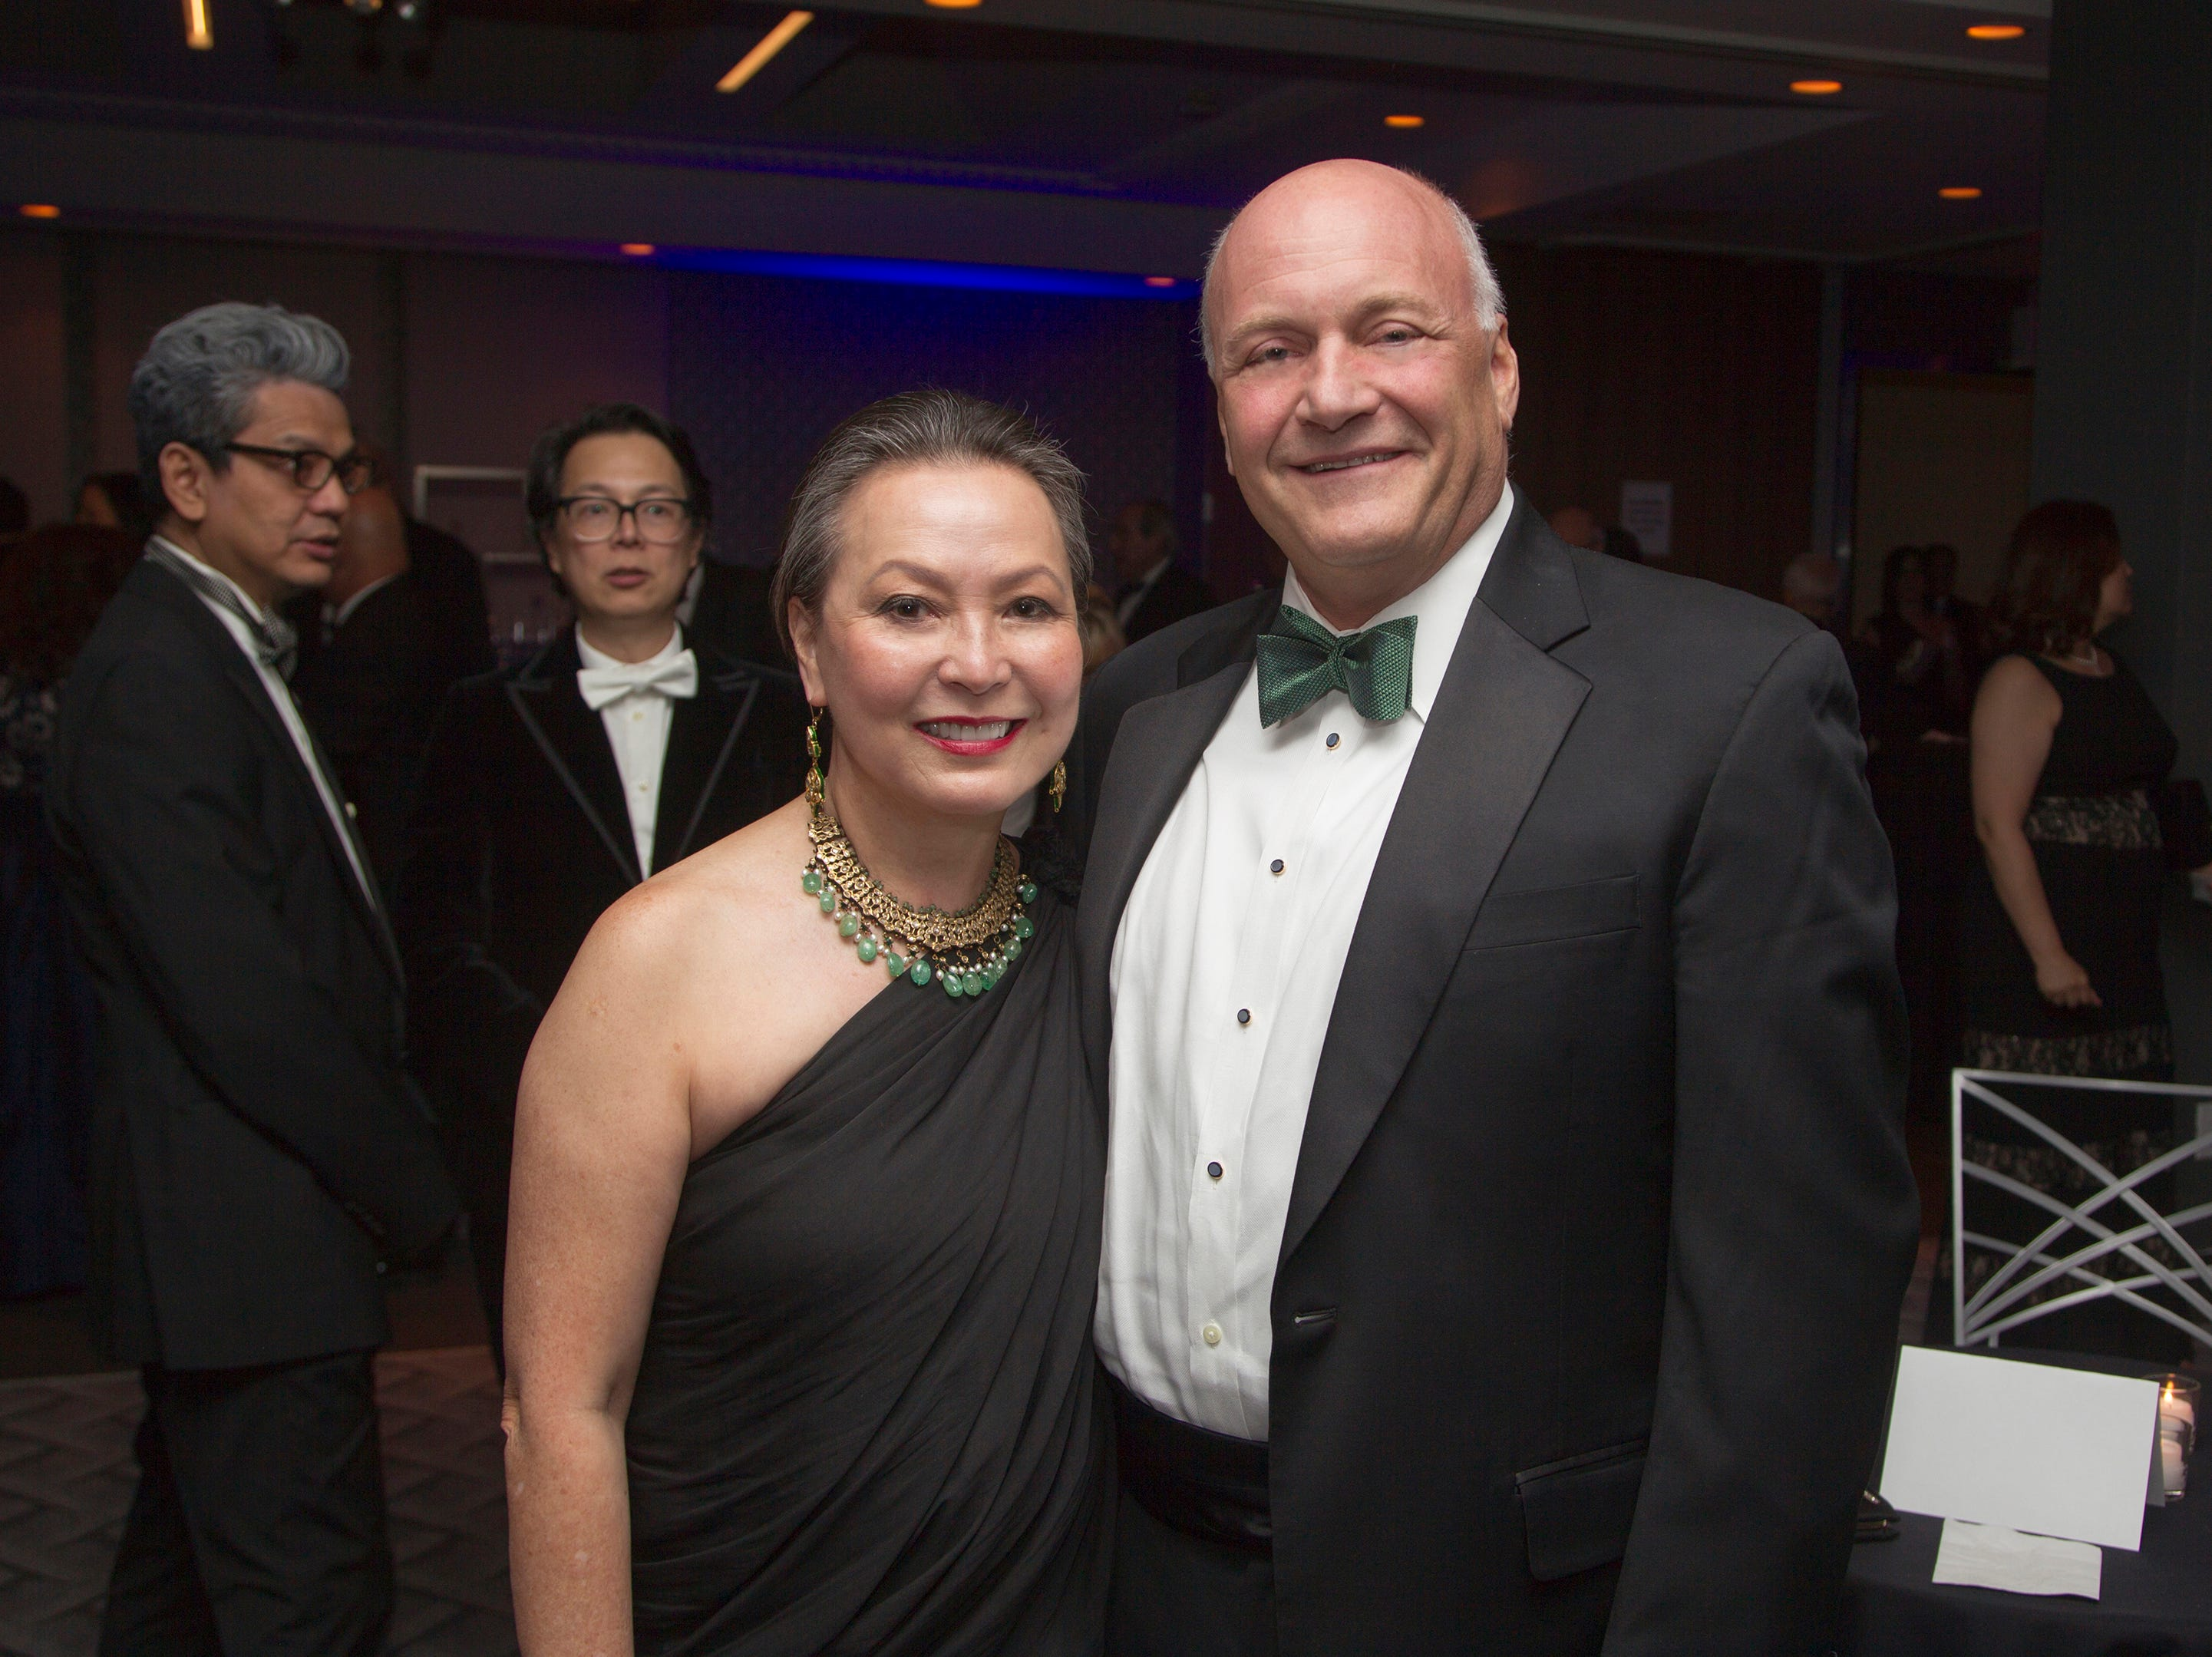 Angelica Berrie, Michael Maron. Holy Name Medical Center held its 2018 Founders Ball in NYC at Ziegfeld Ballroom. 11/17/2018